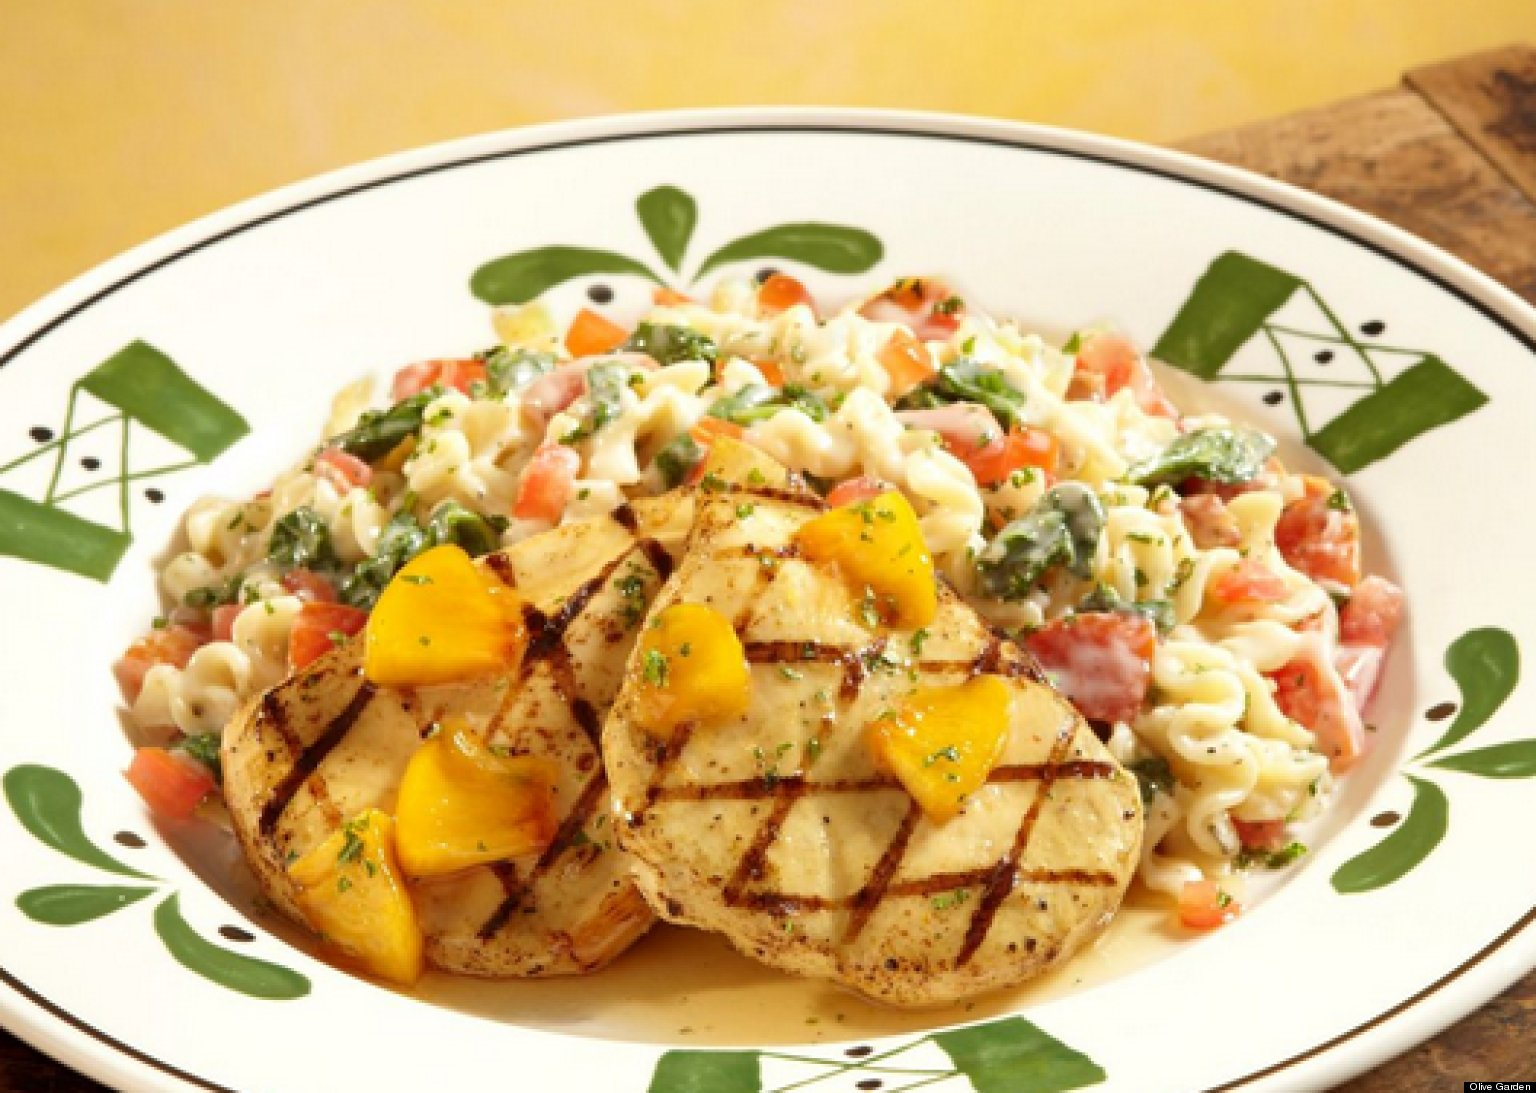 olive garden dishes you wont find in italy huffpost - Olive Garden Food